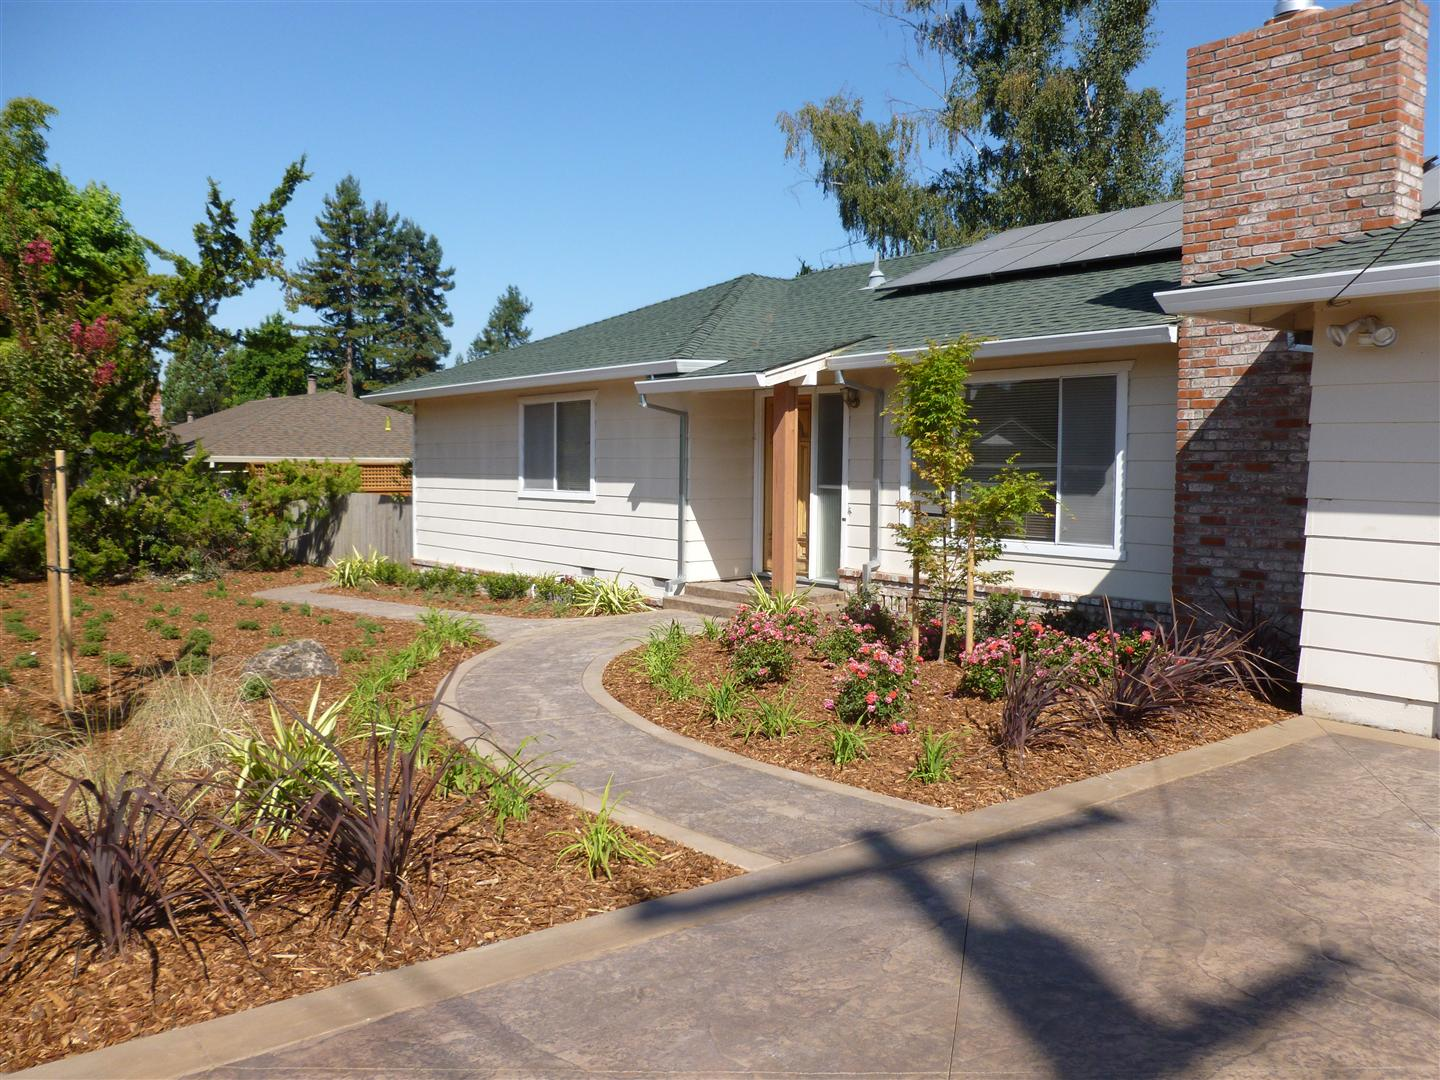 Petaluma Front Yard Makeover | Turned Earth on Concrete Front Yard Ideas id=37555